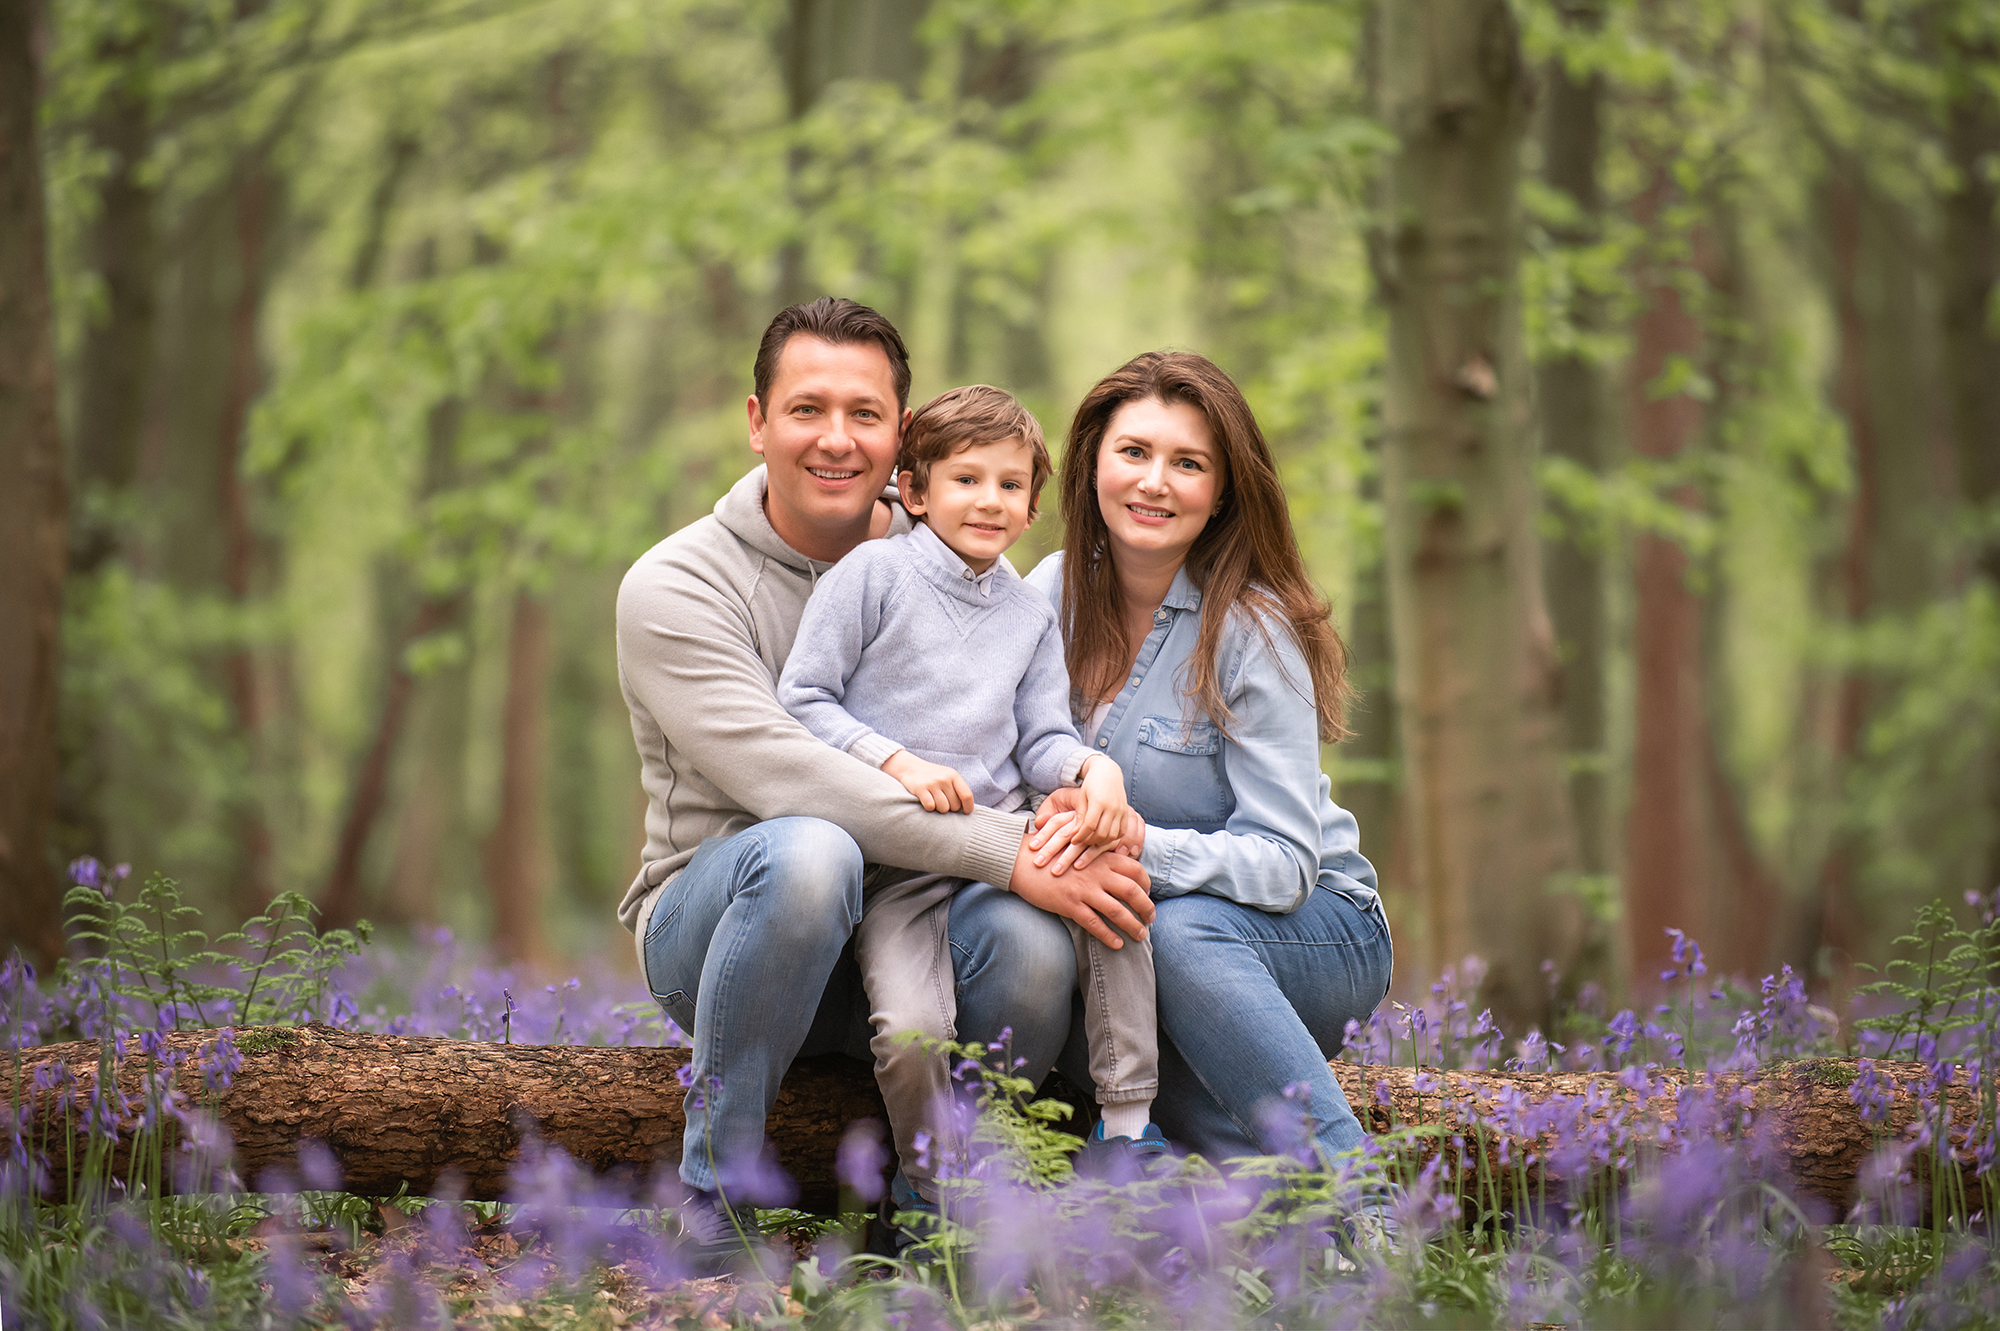 Family photographer Barnsley, taken in a gorgeous bluebell location